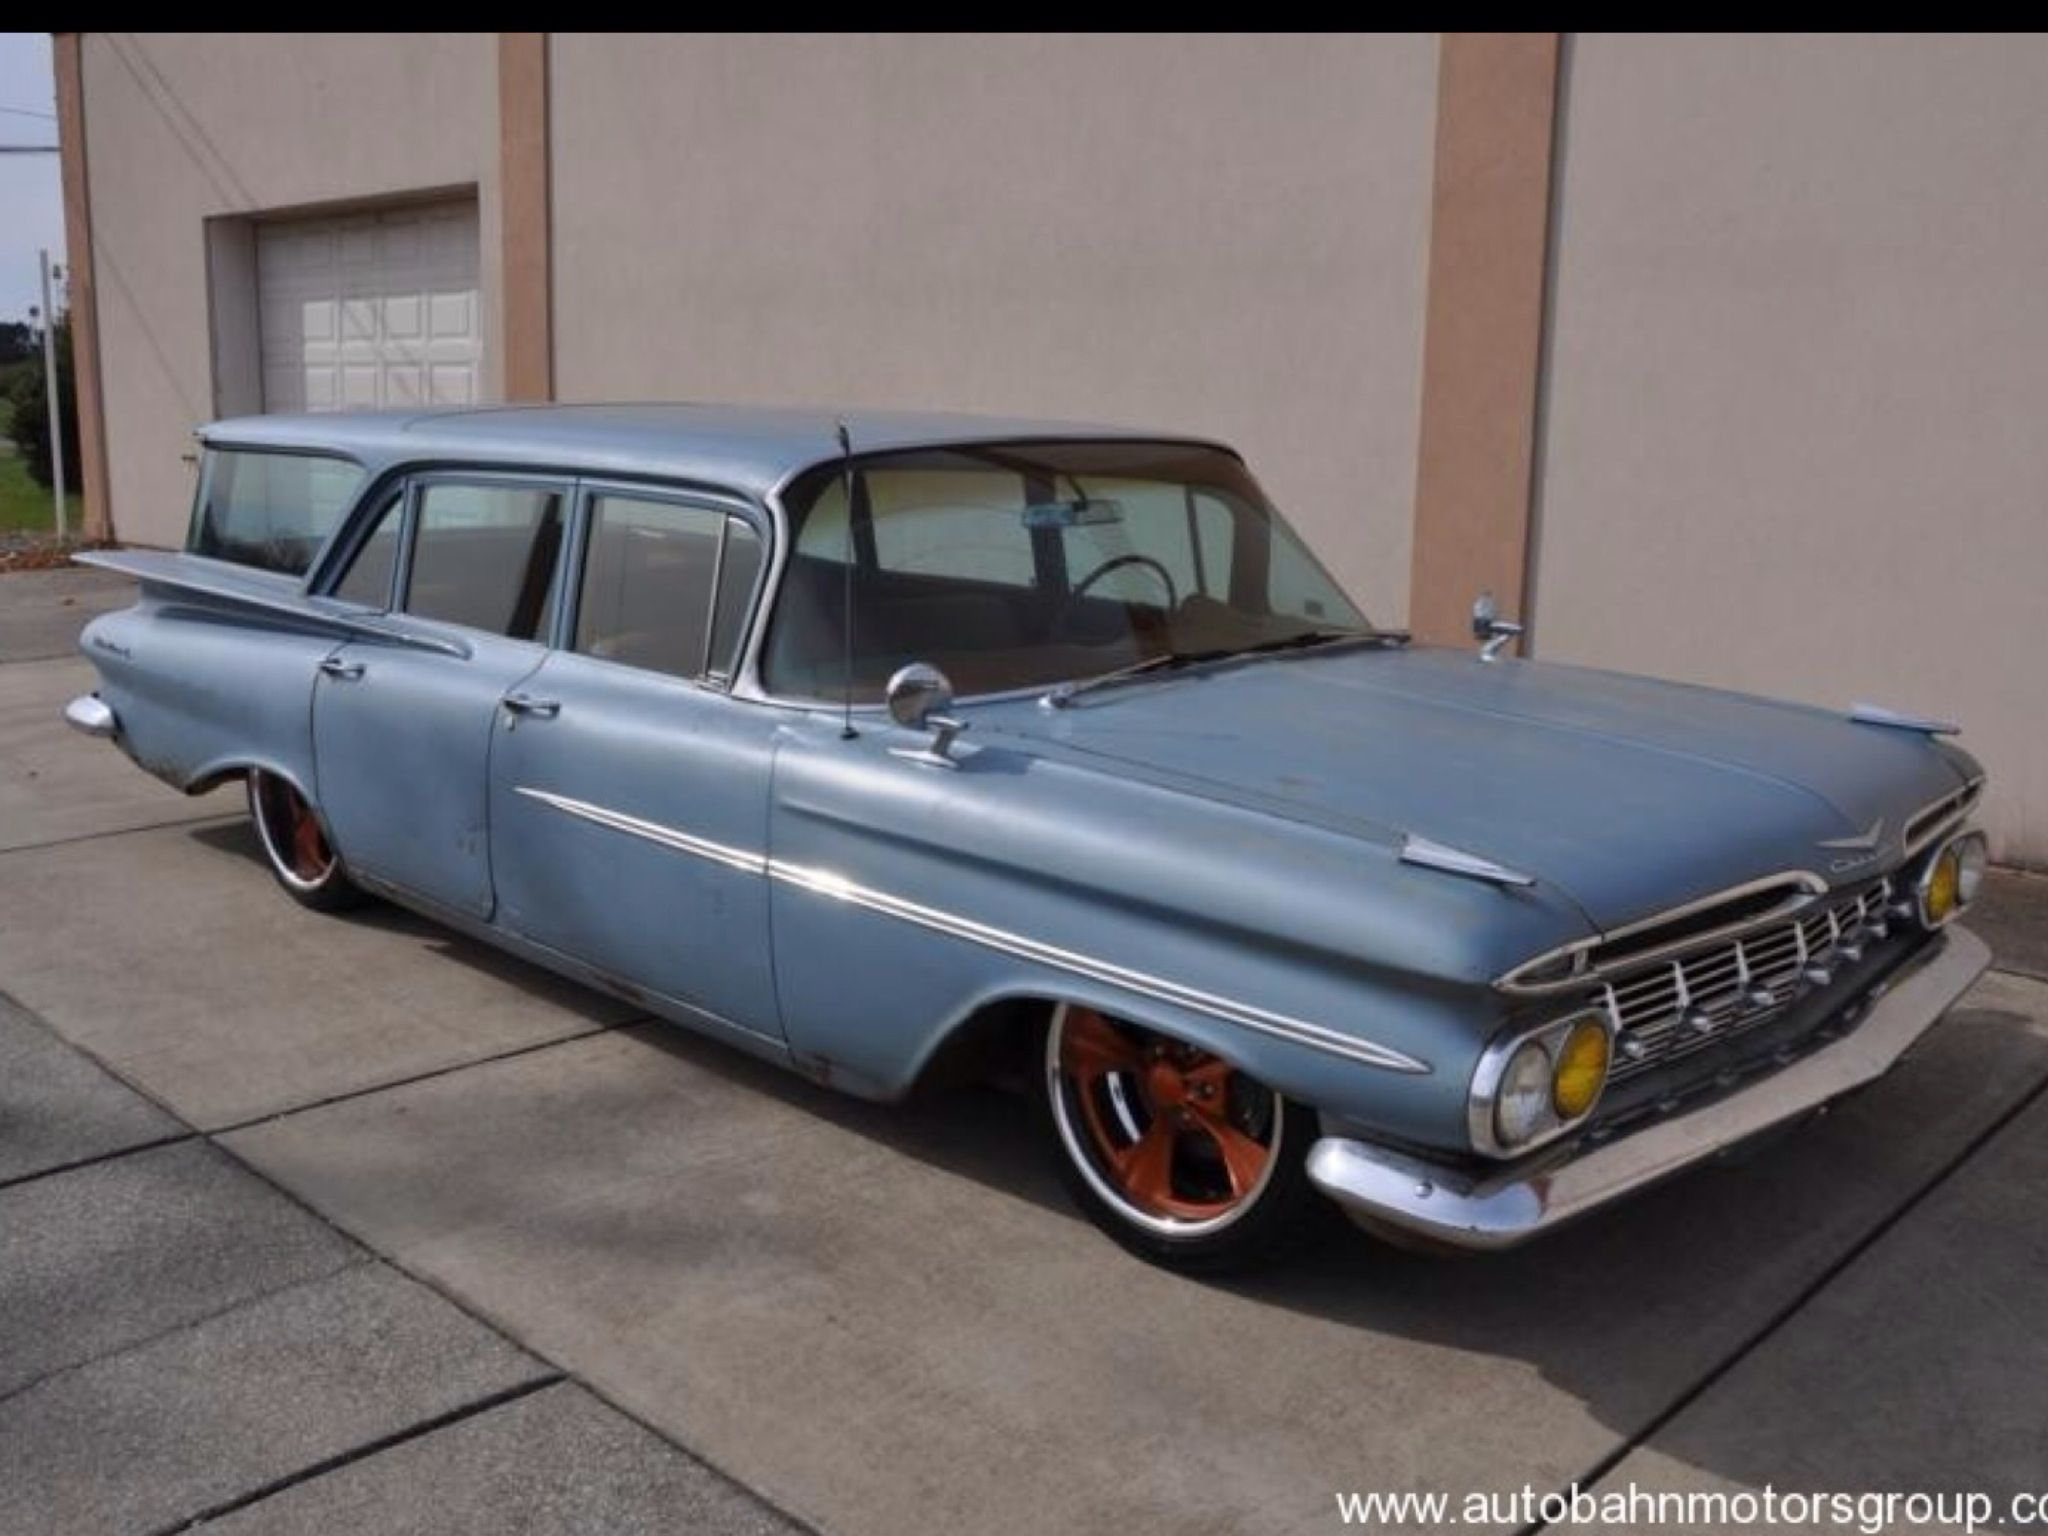 Ratrod chevy 59 impala station wagon